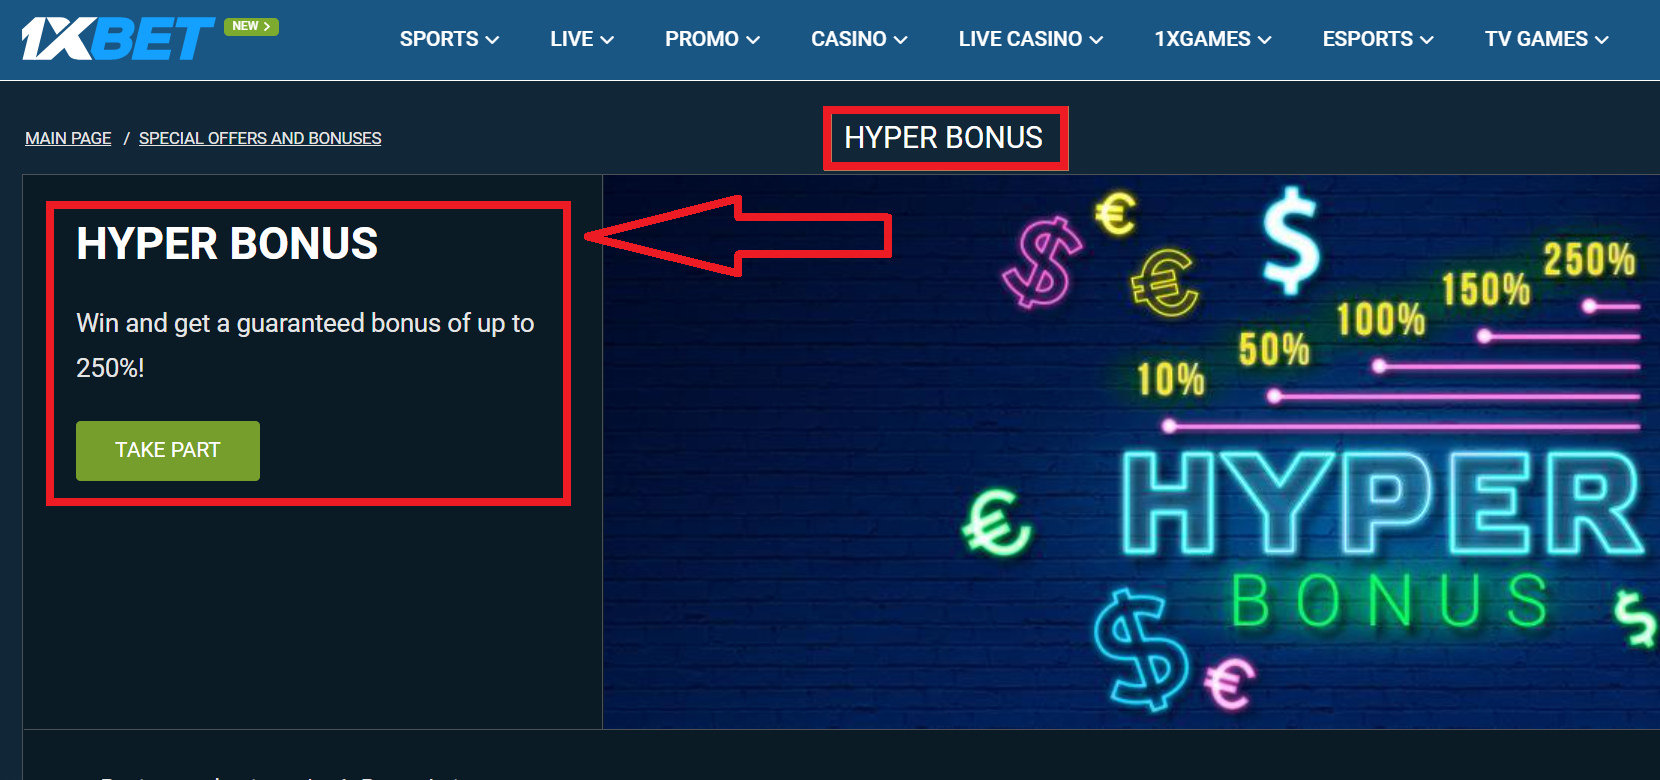 Features of welcome bonus and other rewards from 1xBet